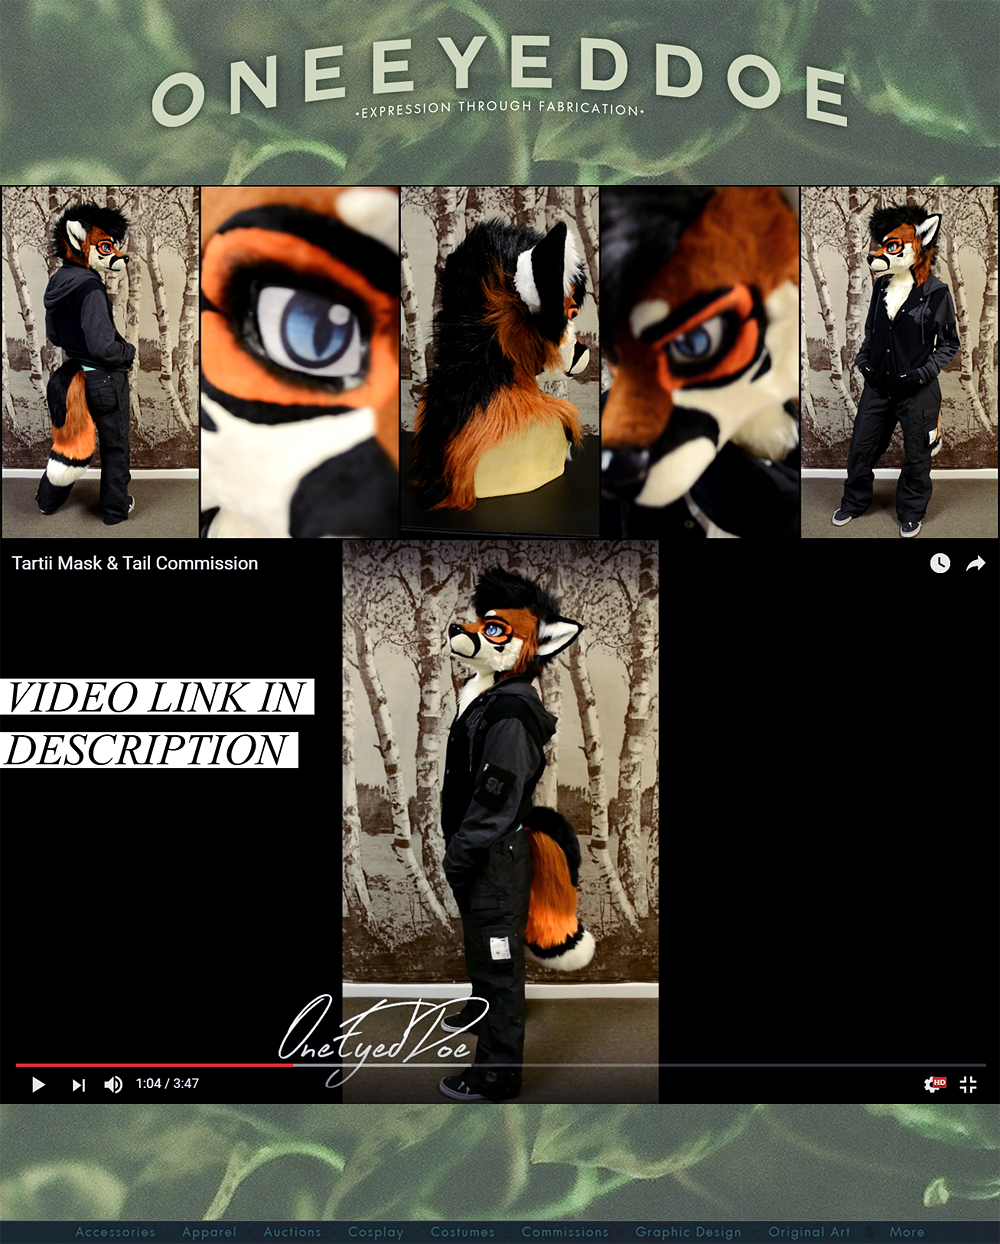 Most recent image: Tartii Mask & Tail Commission + Video